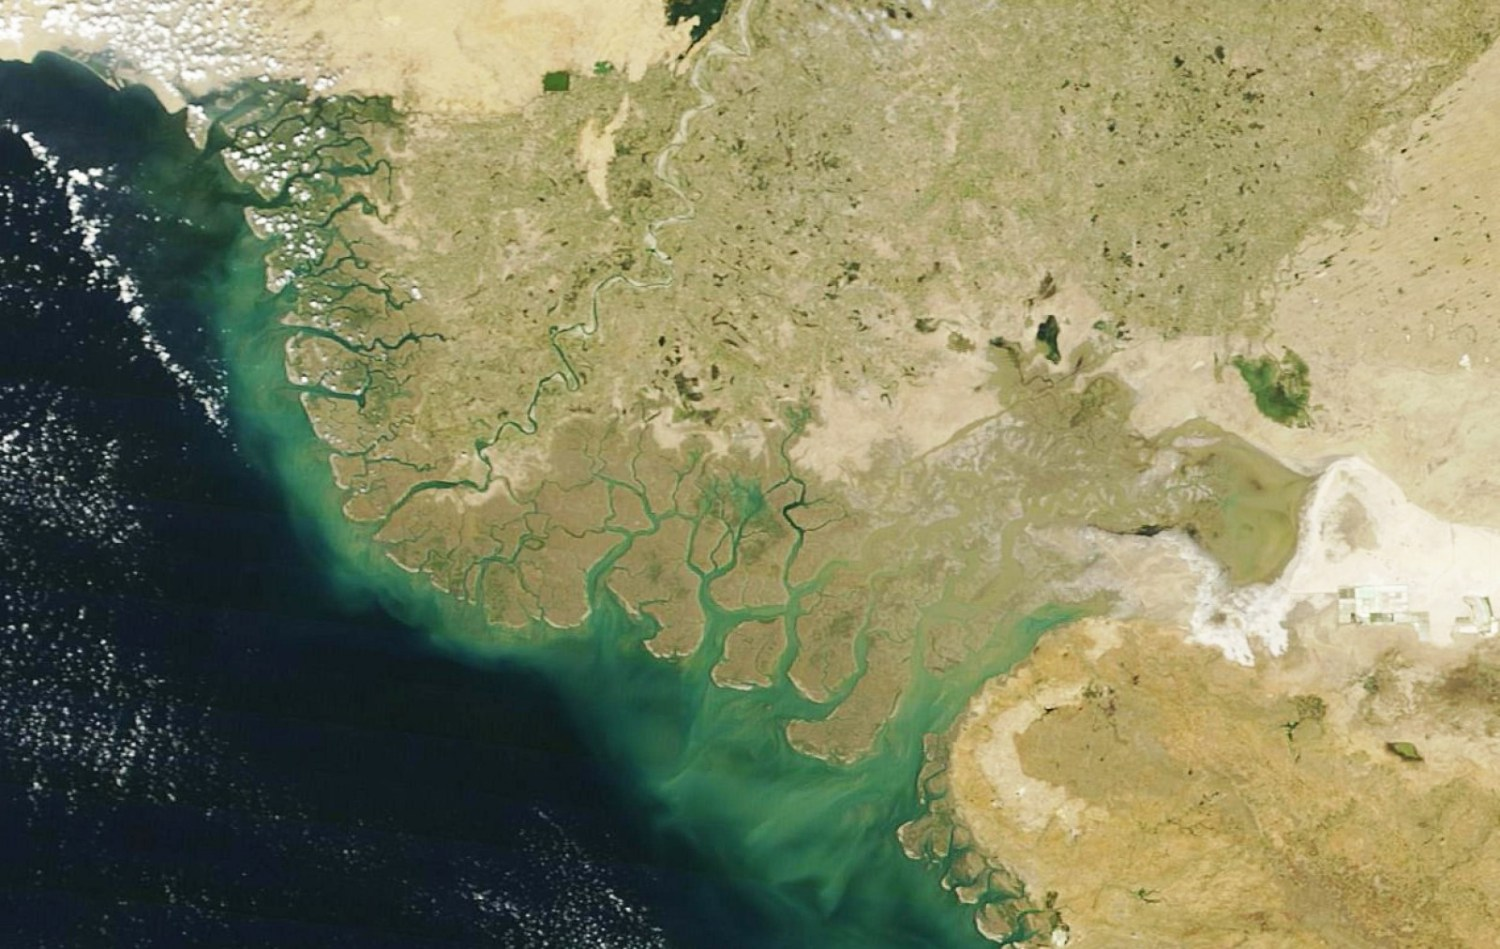 The Indus River travels 3,000 kilometers from the Himalayas before it empties into the Arabian Sea near Karachi. While groundwater reserves are rapidly declining in the upper reaches of the basin, groundwater in the lower basin is salty and largely unusable. This image of the Indus River Delta was captured in March 2016 by the Moderate Resolution Imaging Spectroradiometer (MODIS) sensor on board the Terra satellite. Photo courtesy NASA